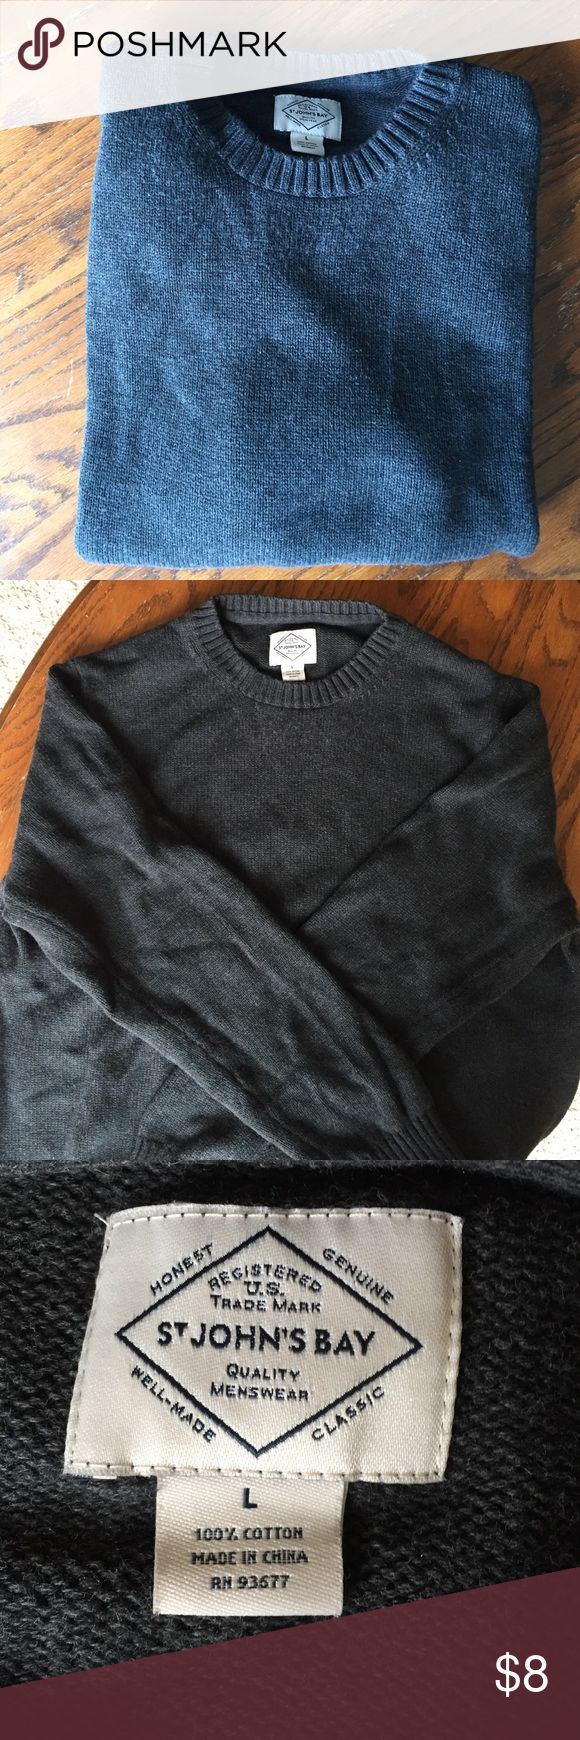 Men's crewneck sweater Men's crewneck sweater for sale, charcoal gray with green undertones. Size large. Great for a cozy afternoon in with a hot cup of coffee. St. John's Bay Sweaters Crewneck